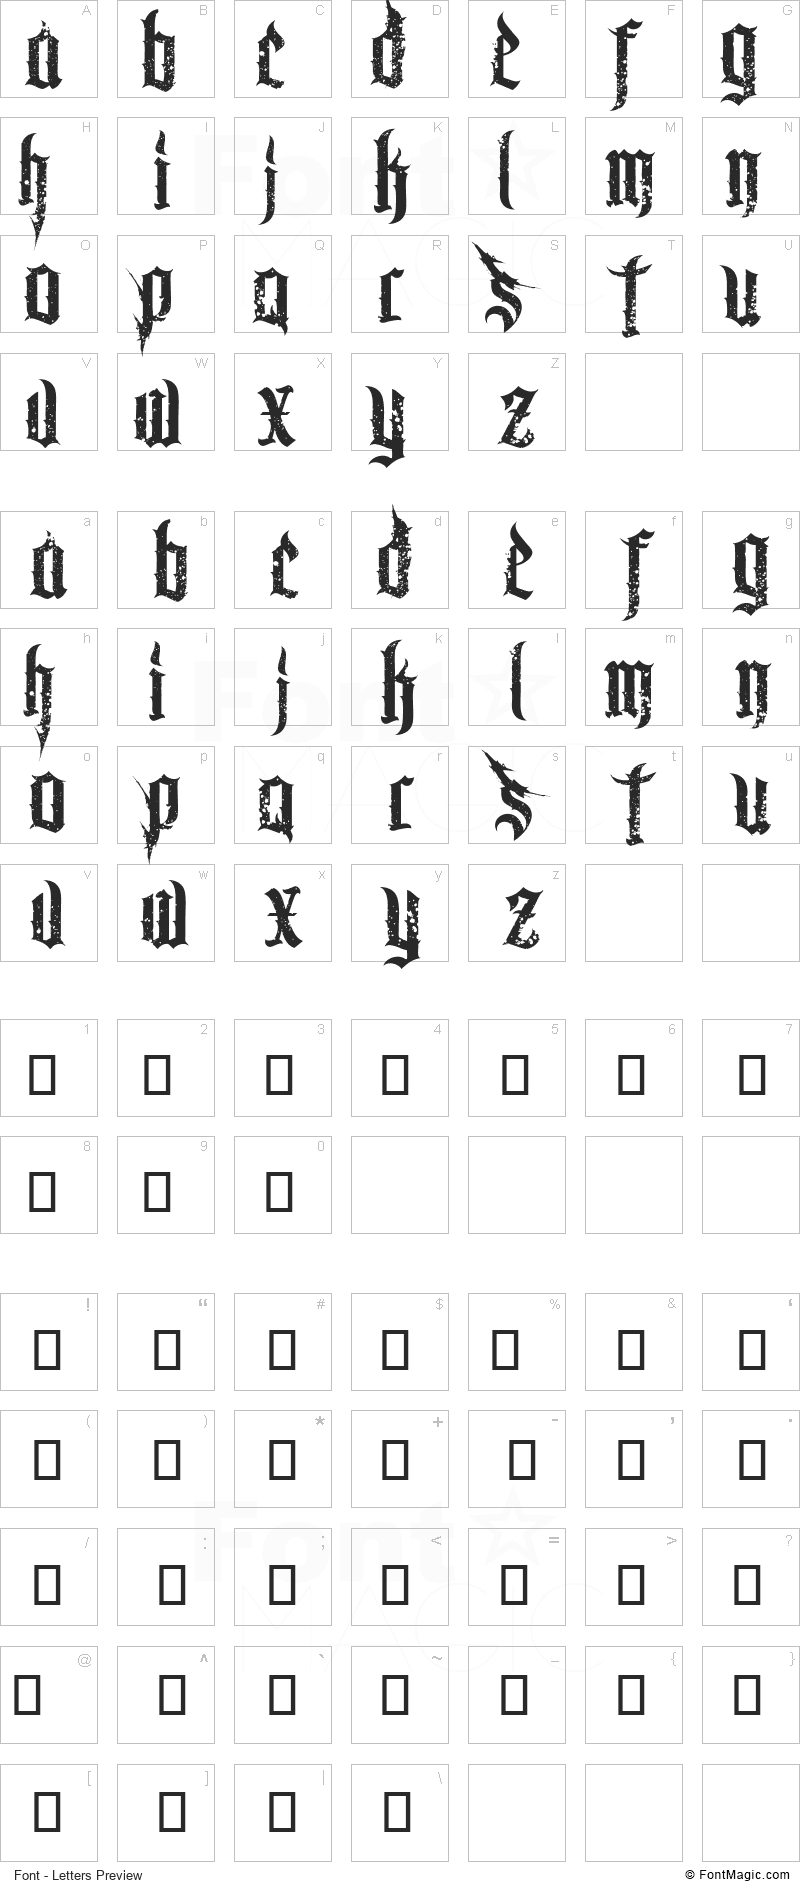 Chaos and Pain Font - All Latters Preview Chart